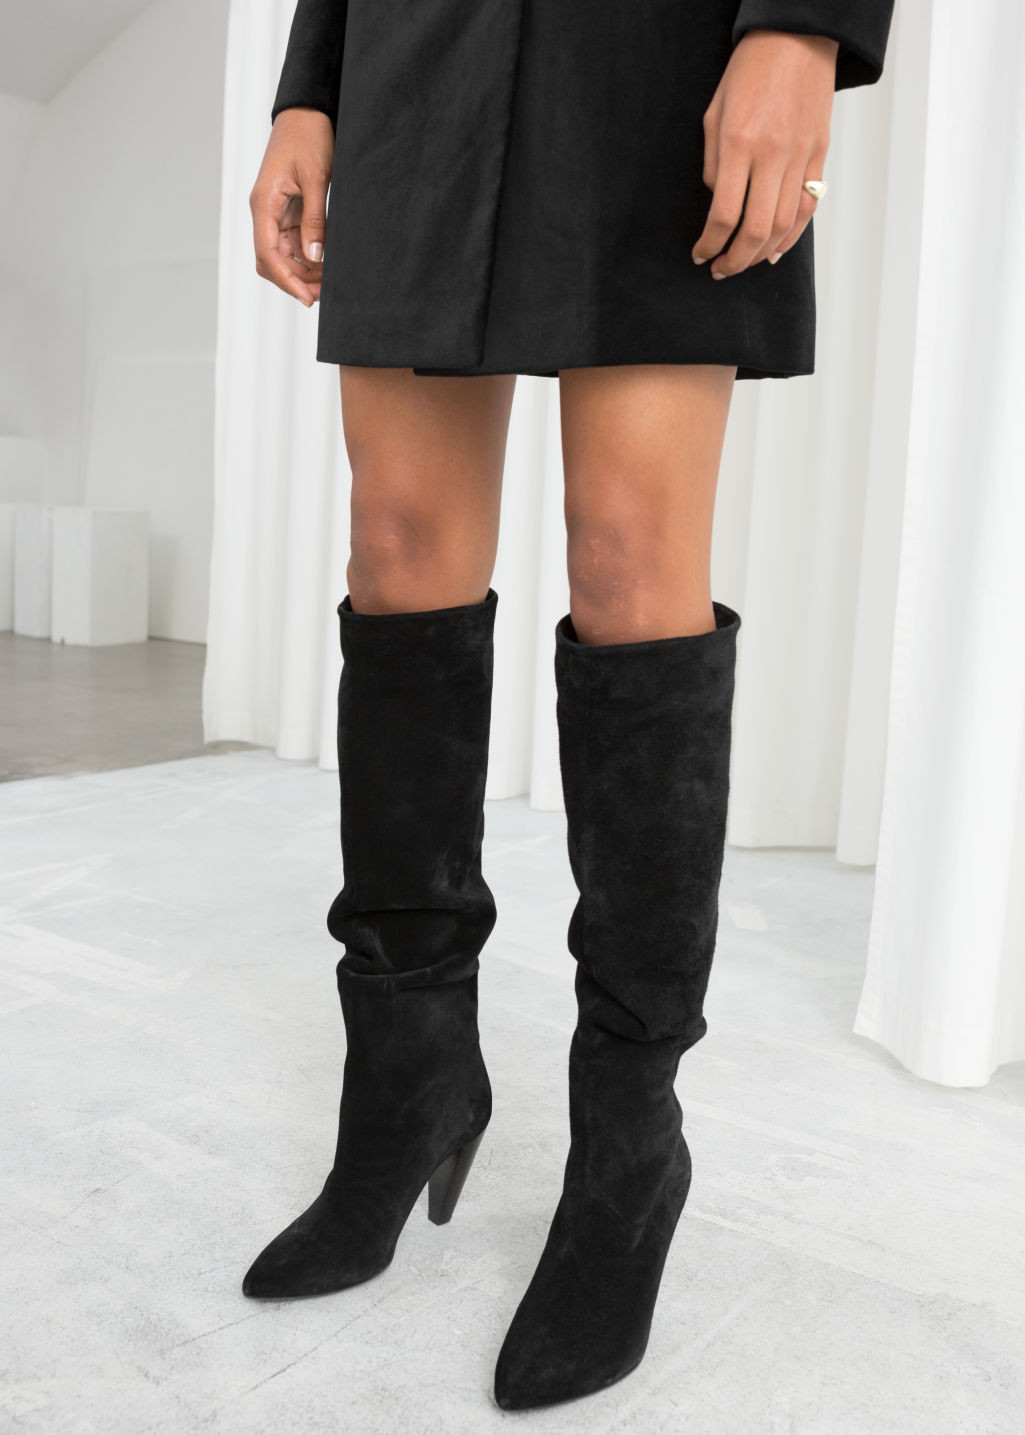 33afc2509e6 Knee High Suede Boots - Black - Knee high boots - & Other Stories